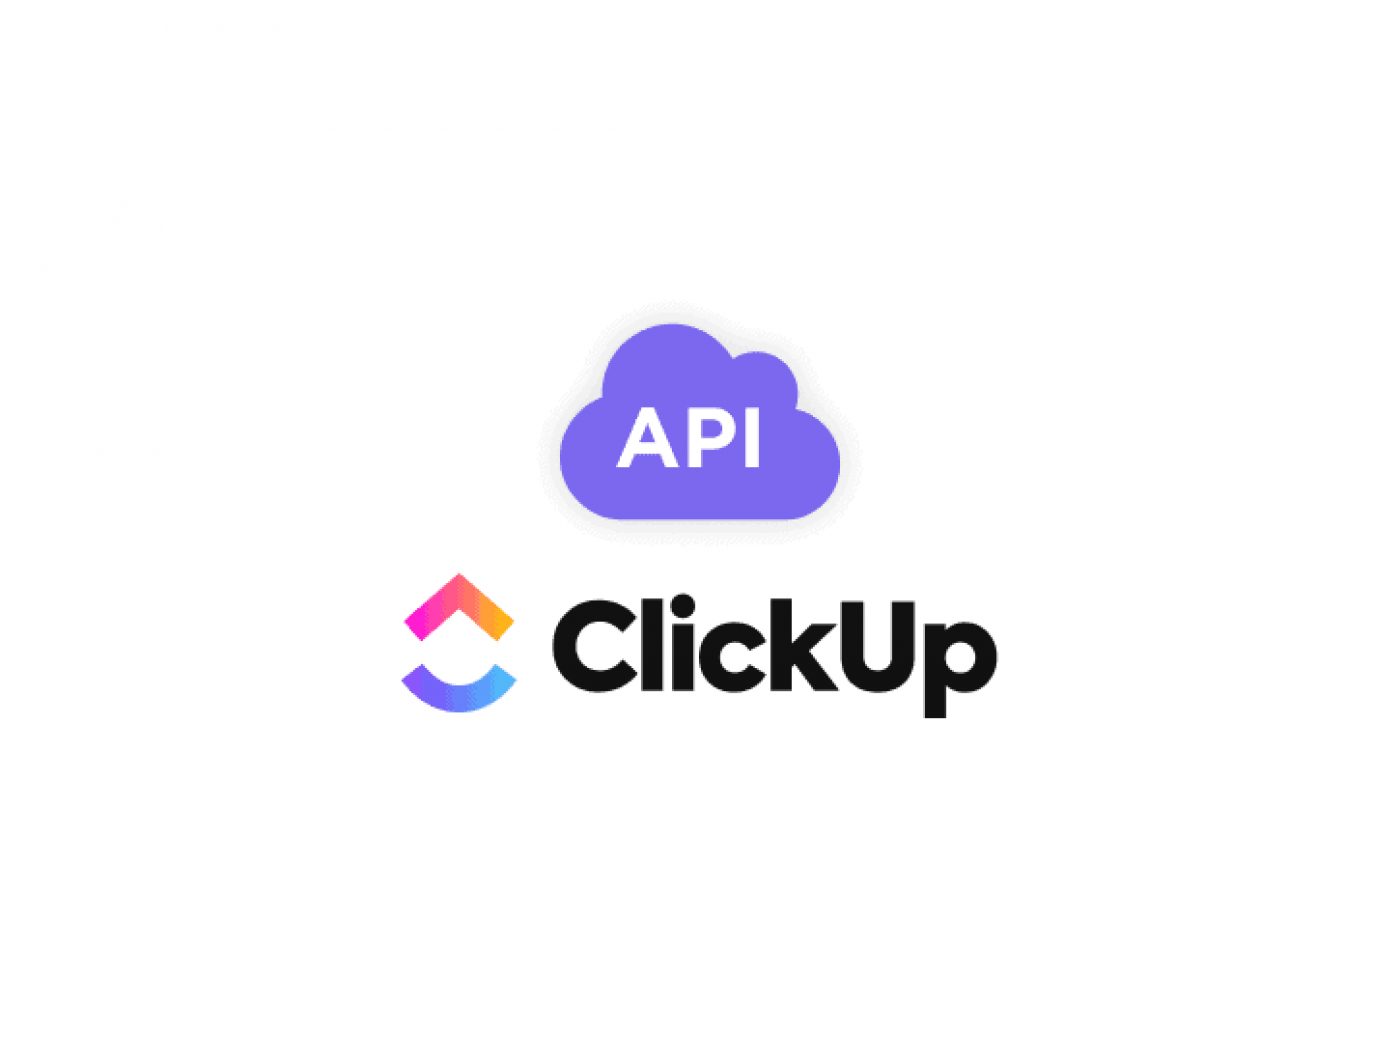 What You Can Do With ClickUp's API